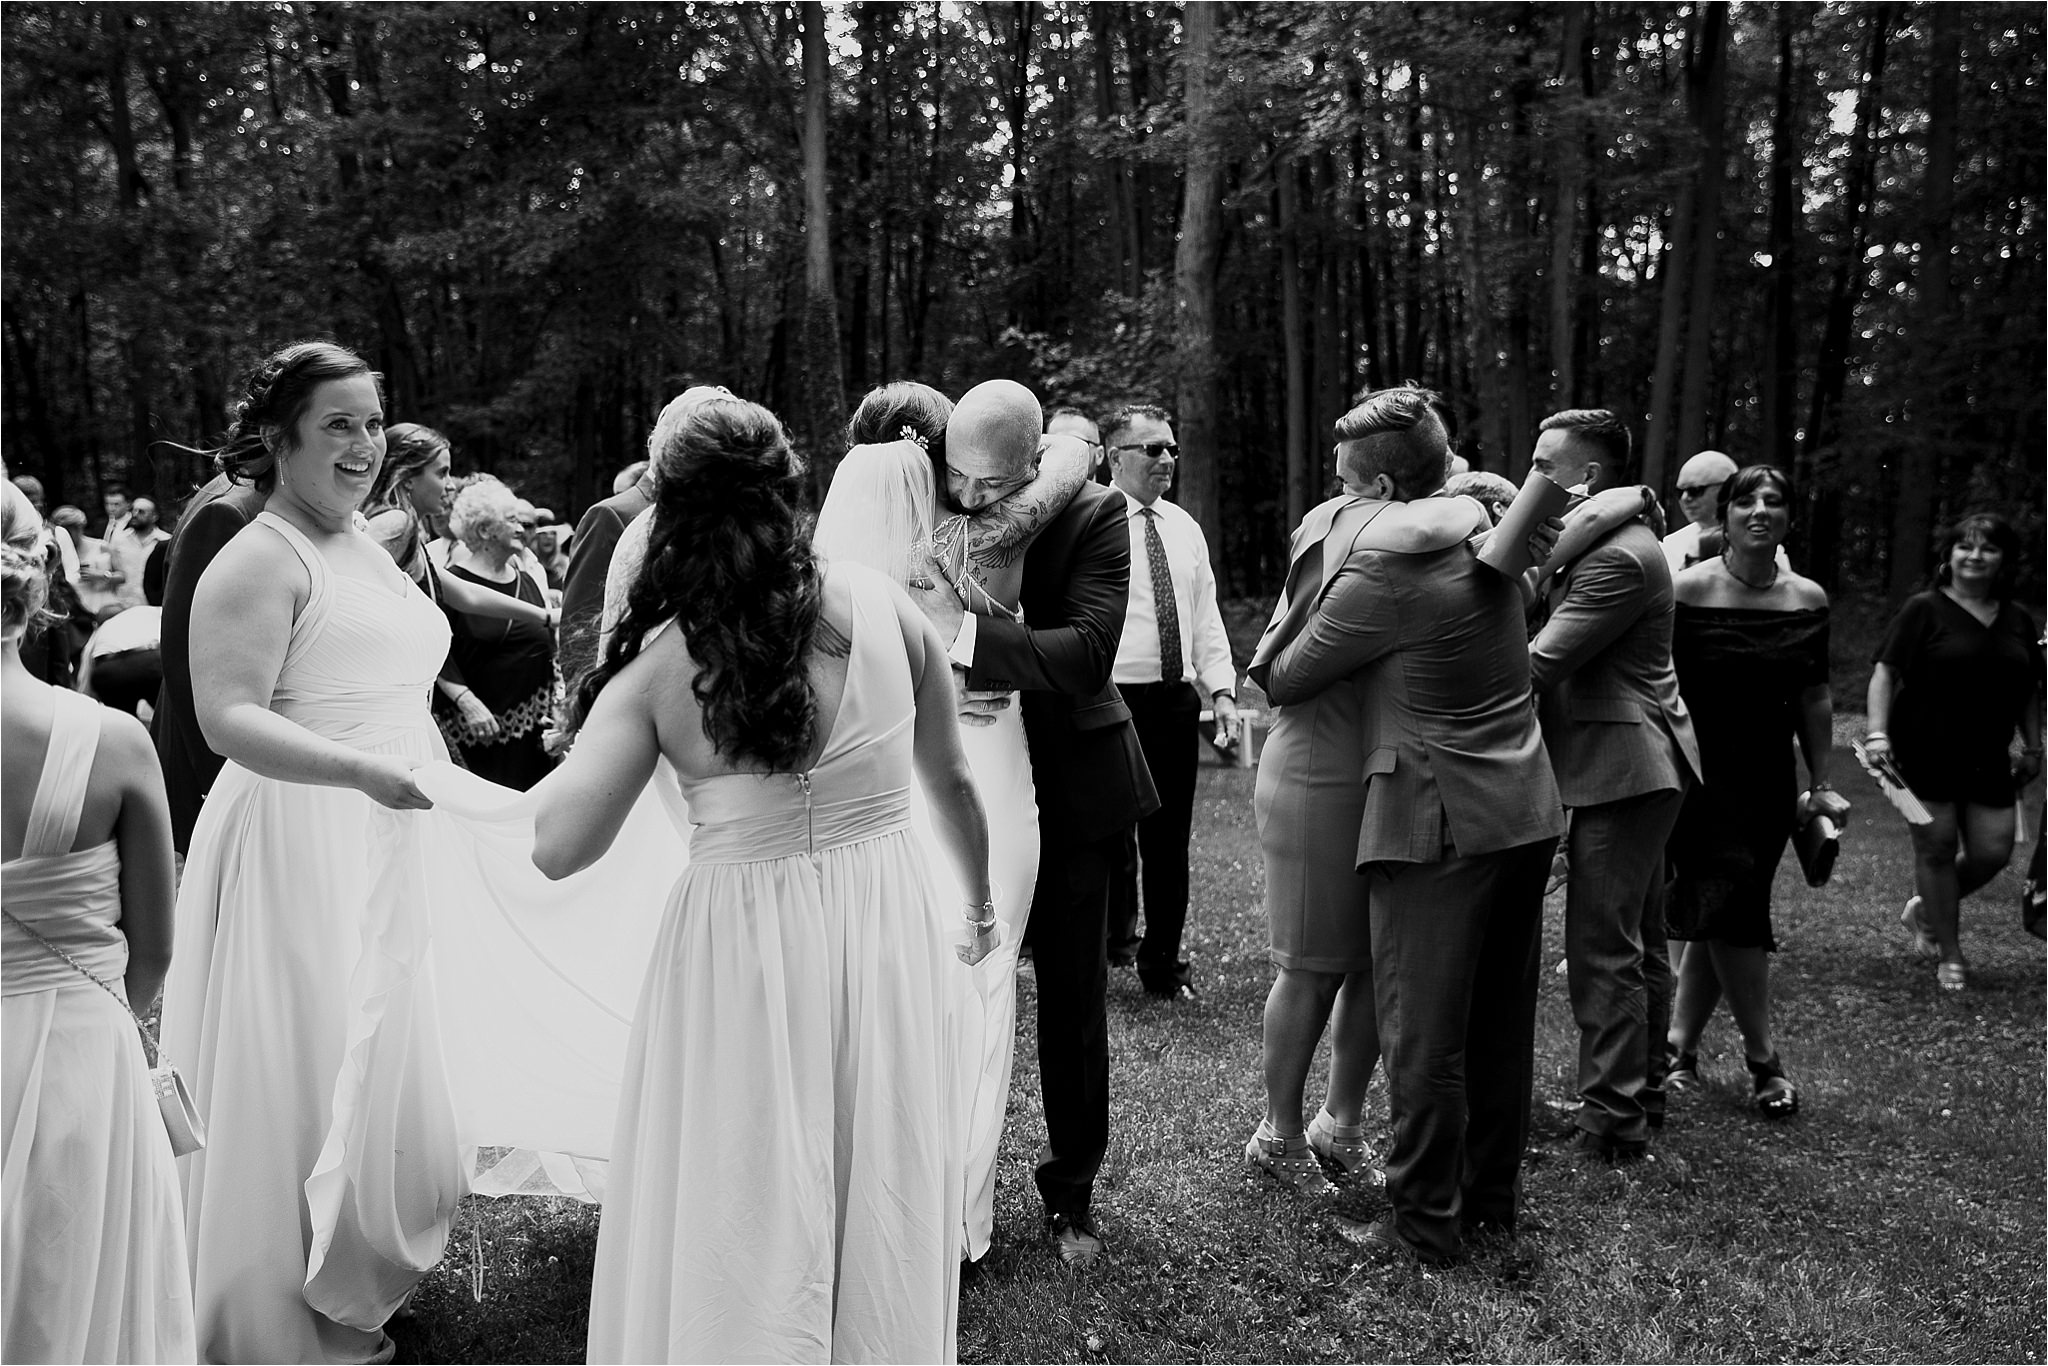 Sonia V Photography, The Clearing ceremony wedding venue, hugs after the ceremony